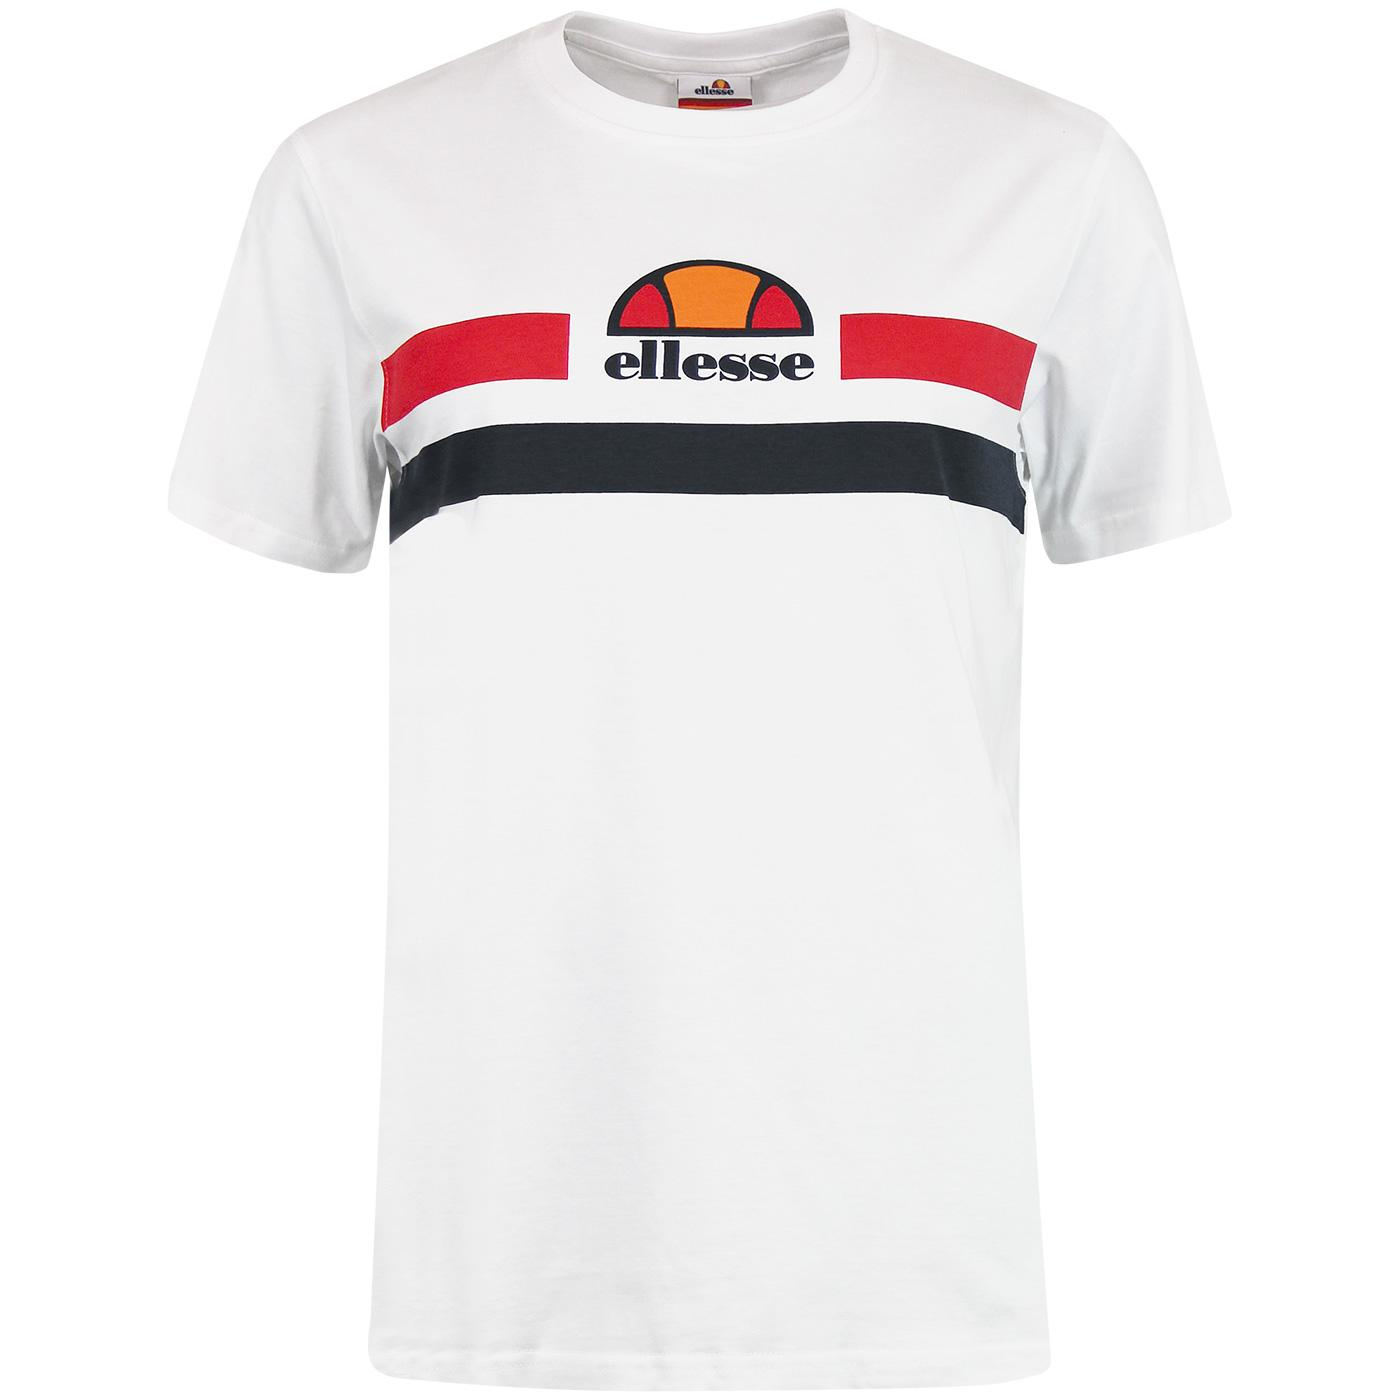 Lattea ELLESSE Retro 70s Boyfriend Fit T-Shirt